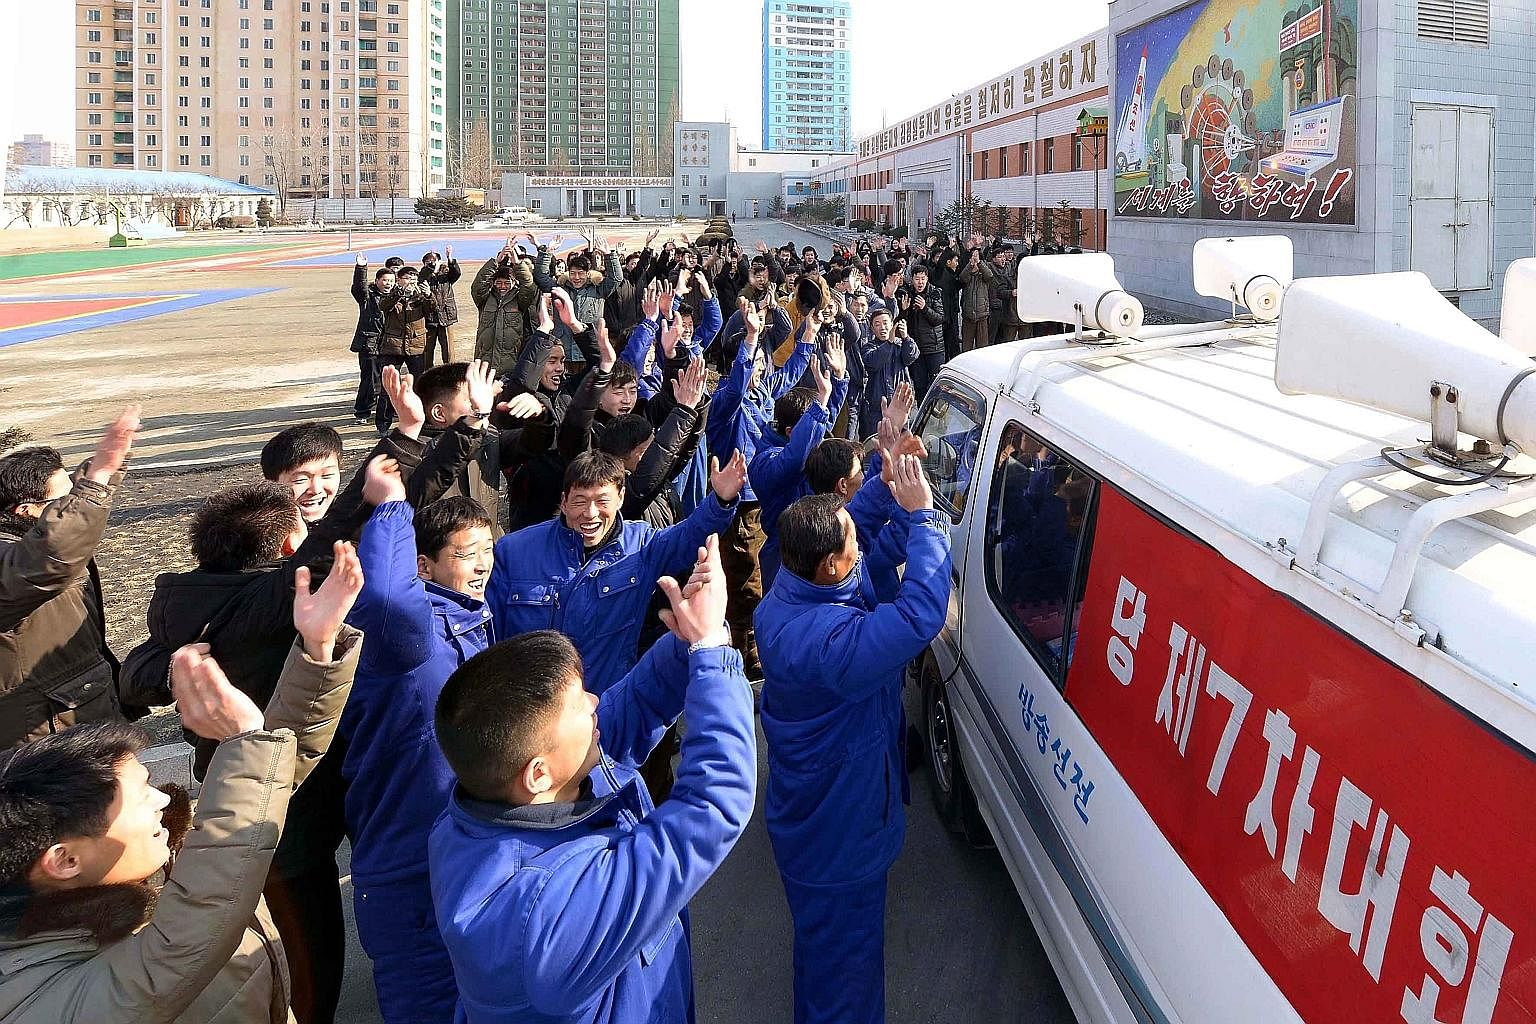 North Koreans reacting with joy to news that the country has succeeded in detonating a hydrogen bomb. The bomb test was North Korea's fourth since 2006, and independent reports of man-made seismic activity inside the country seem to confirm the claim